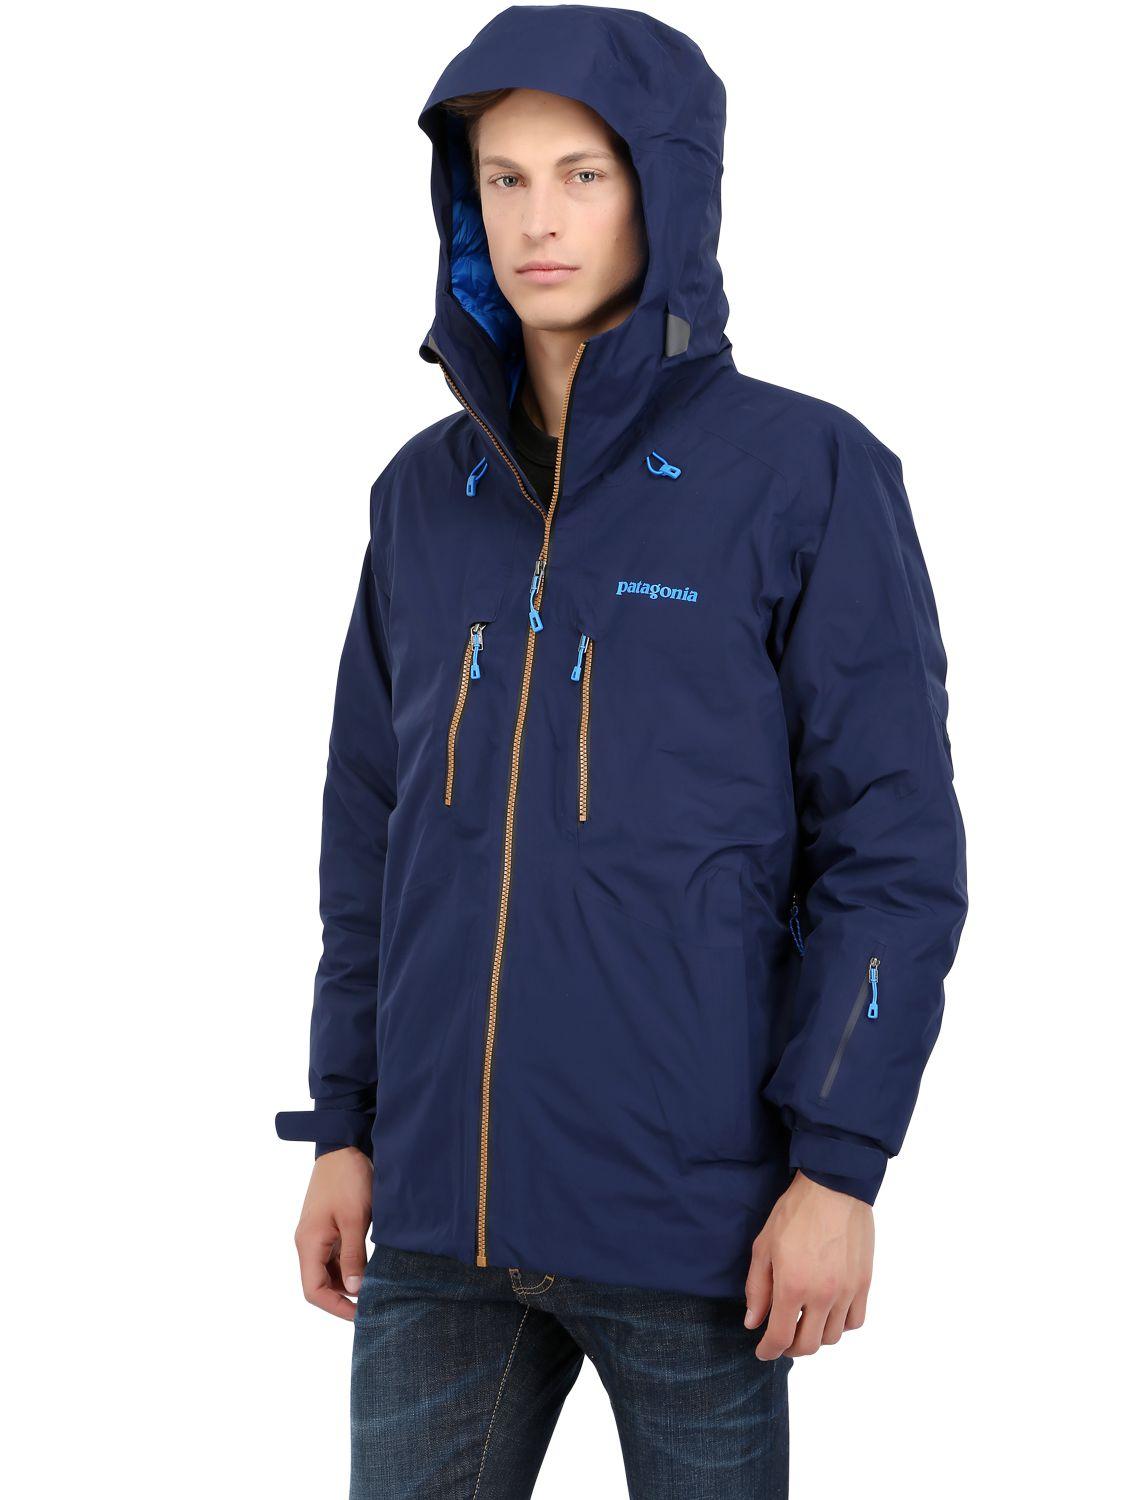 Patagonia primo down jacket in blue for men lyst for Patagonia men s recycled down shirt jacket